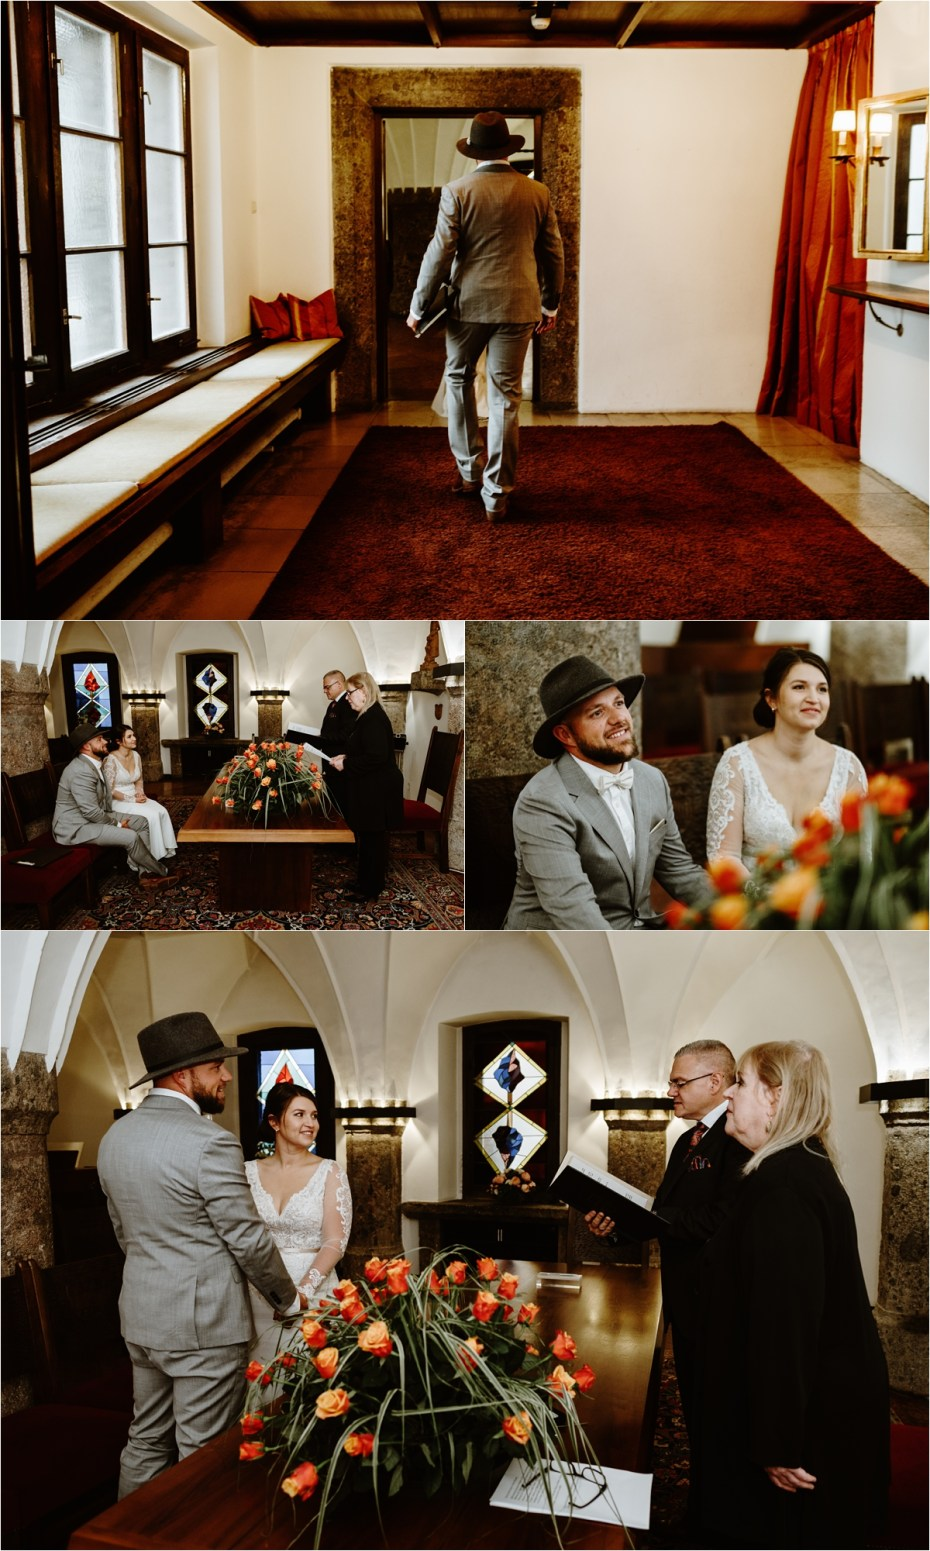 Elopement civil ceremony at Innsbruck registry office. Photos by Wild Connections Photography